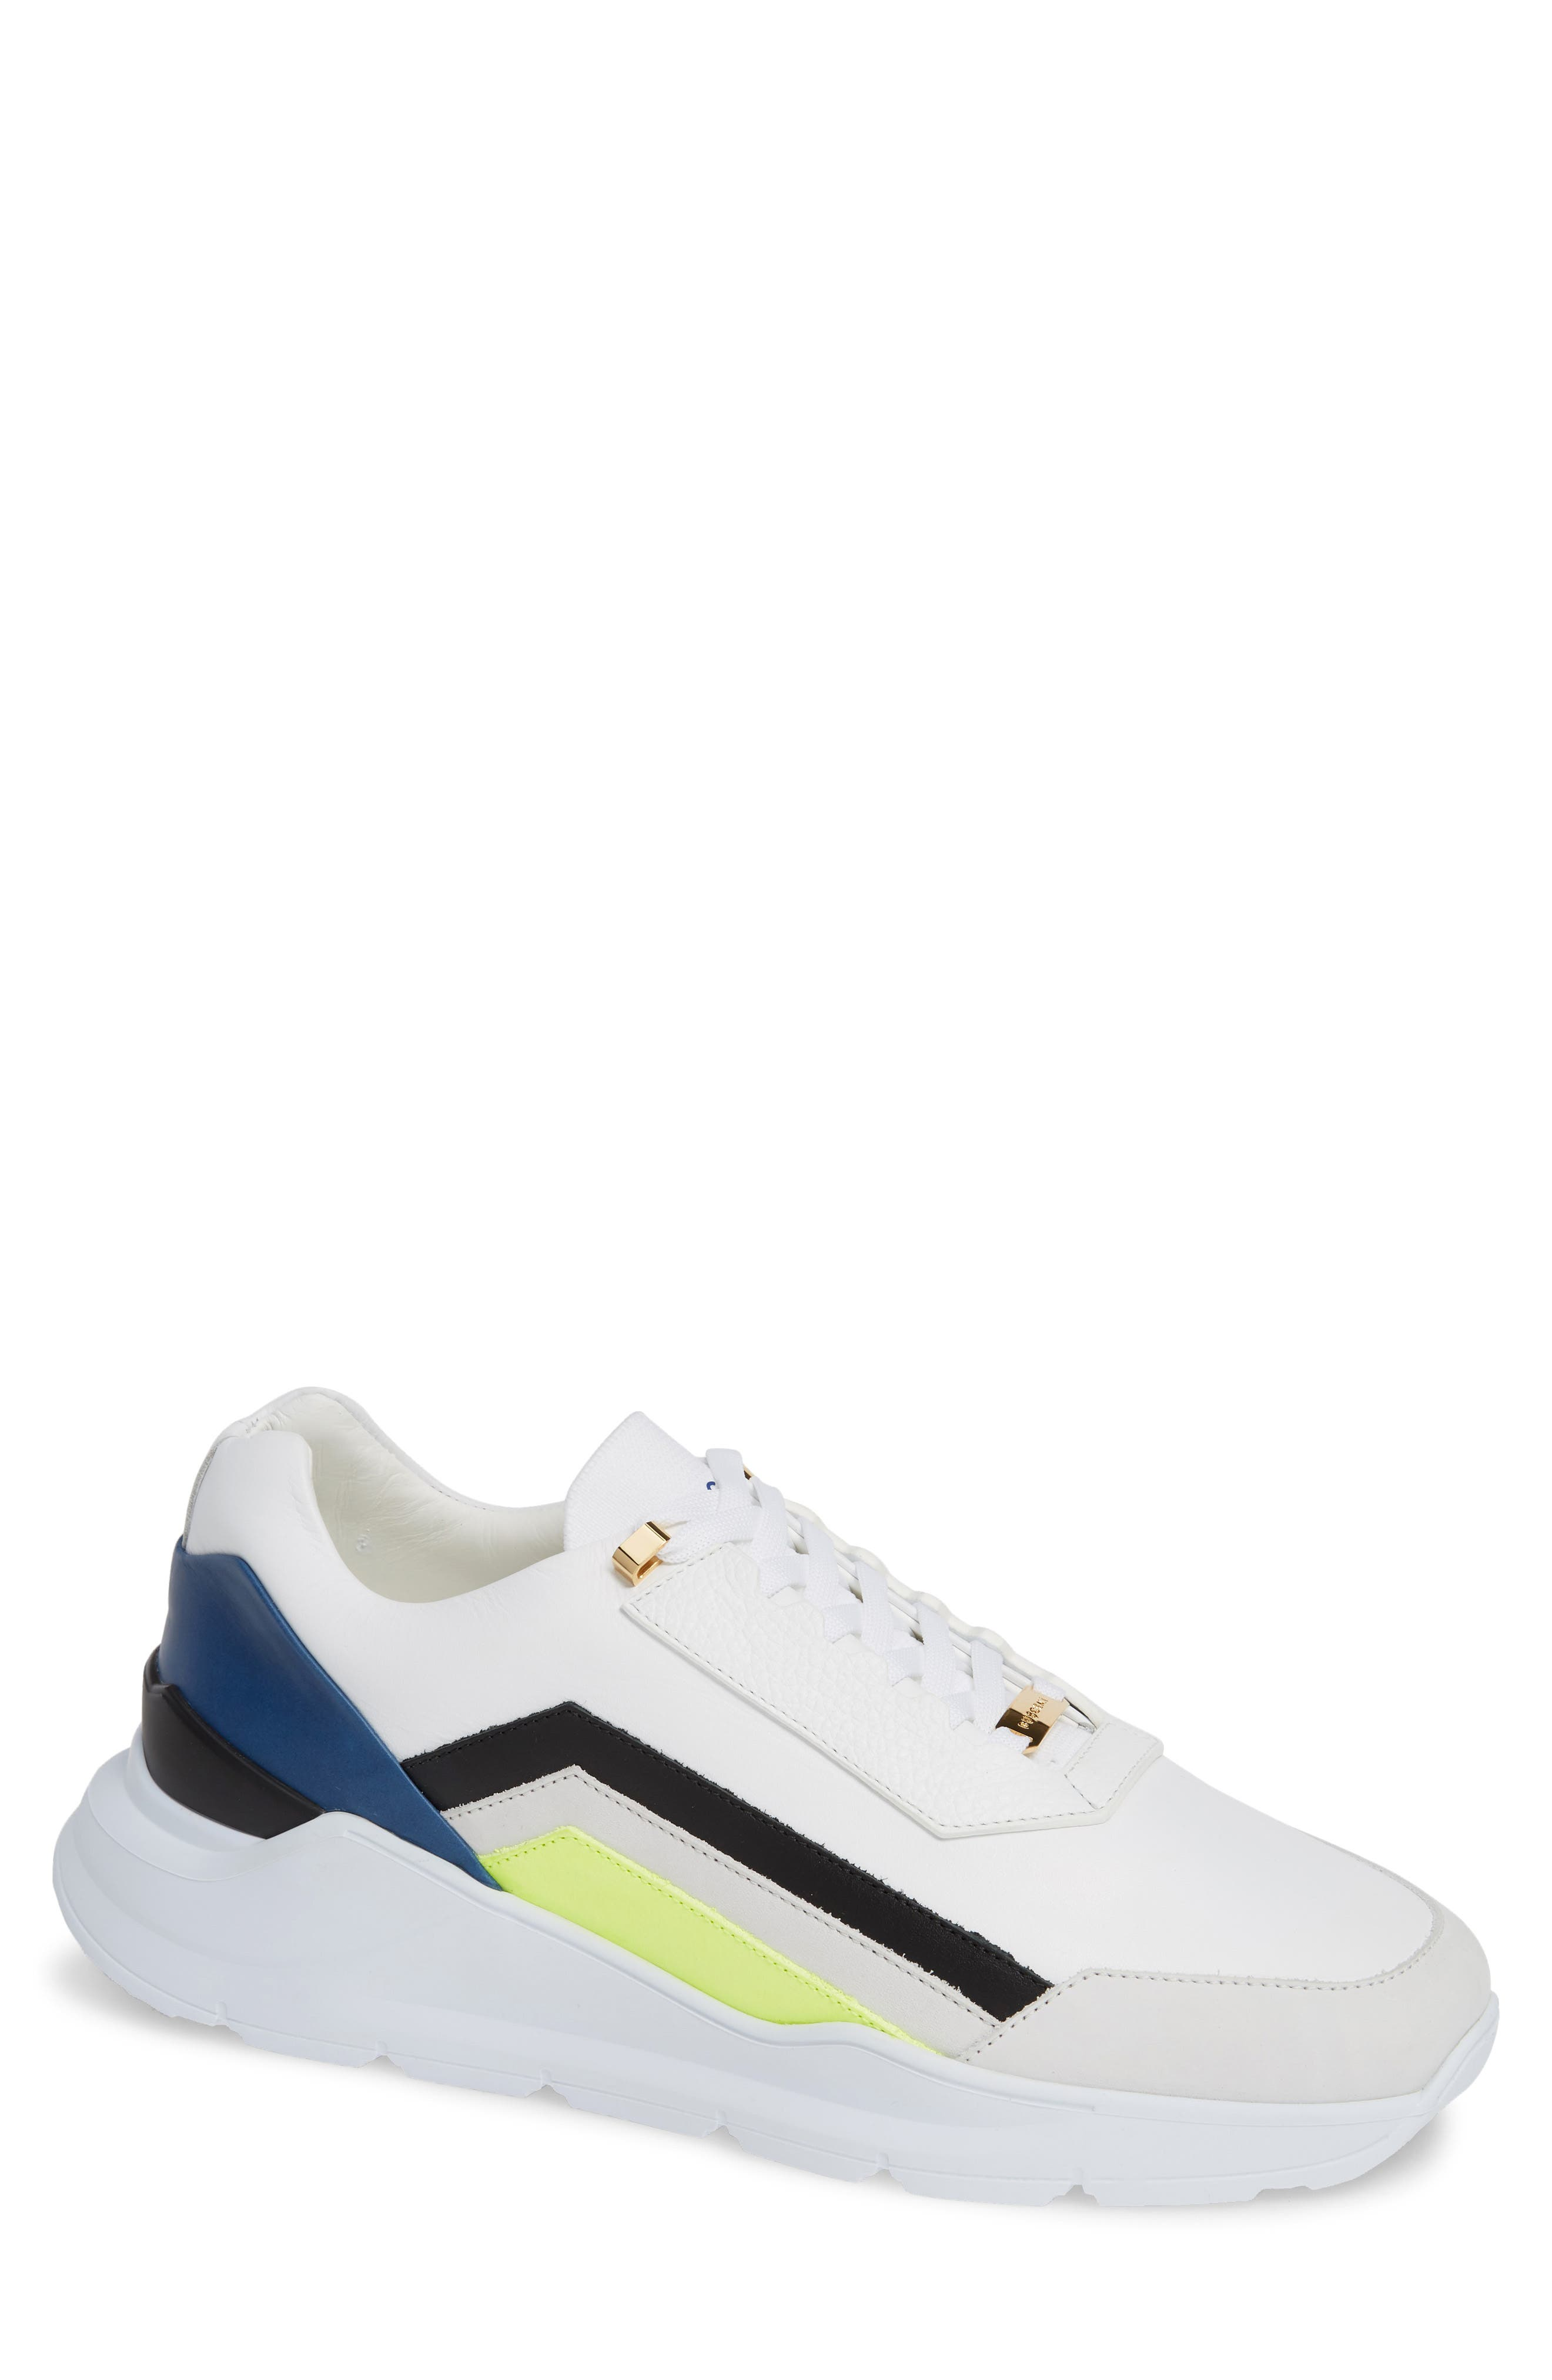 BUSCEMI Men'S Strada Leather Trainer Sneakers in White